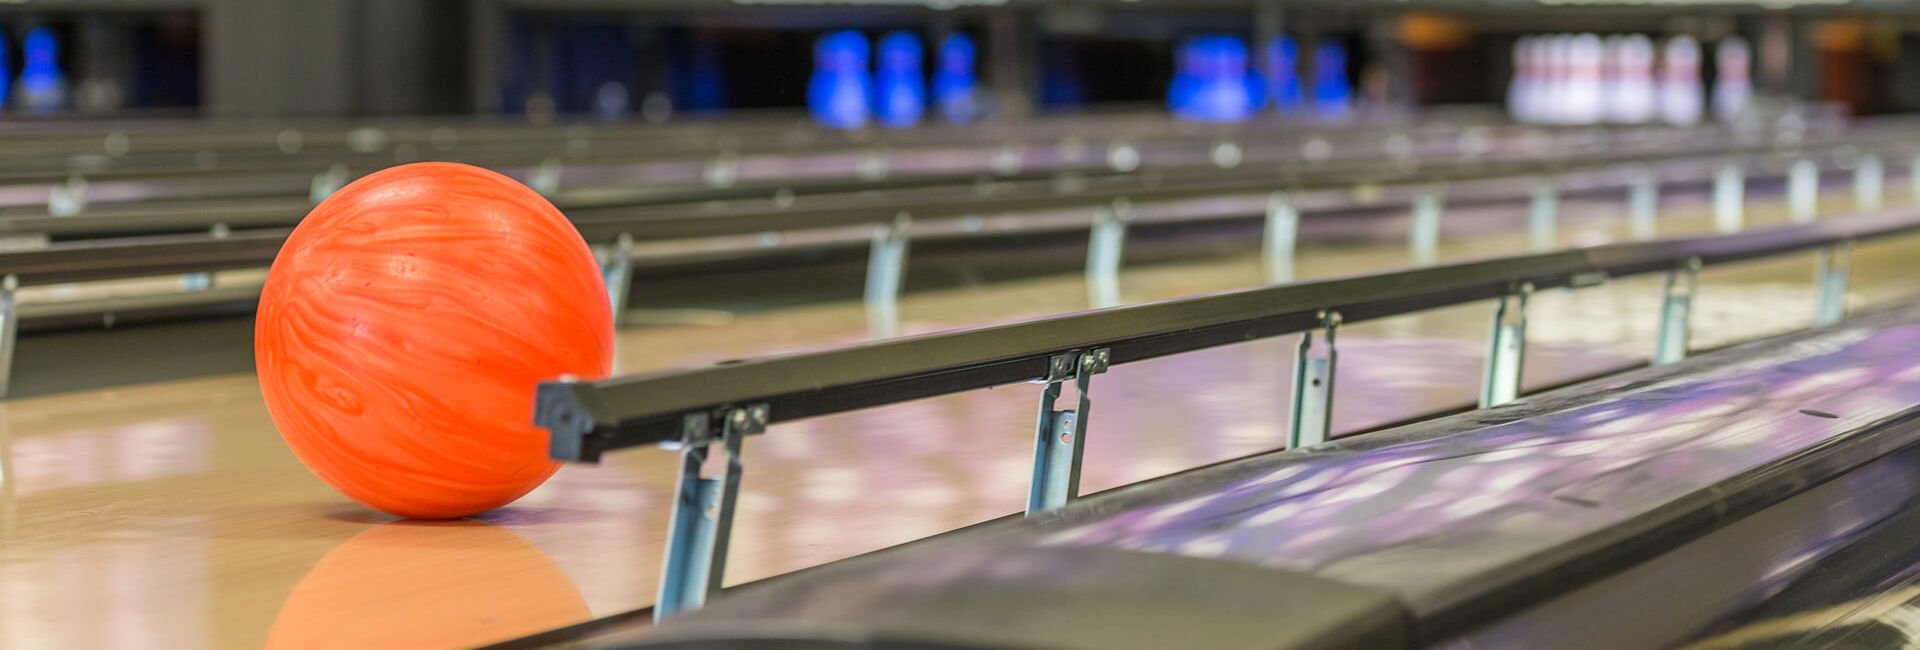 Bowling lane with bumpers